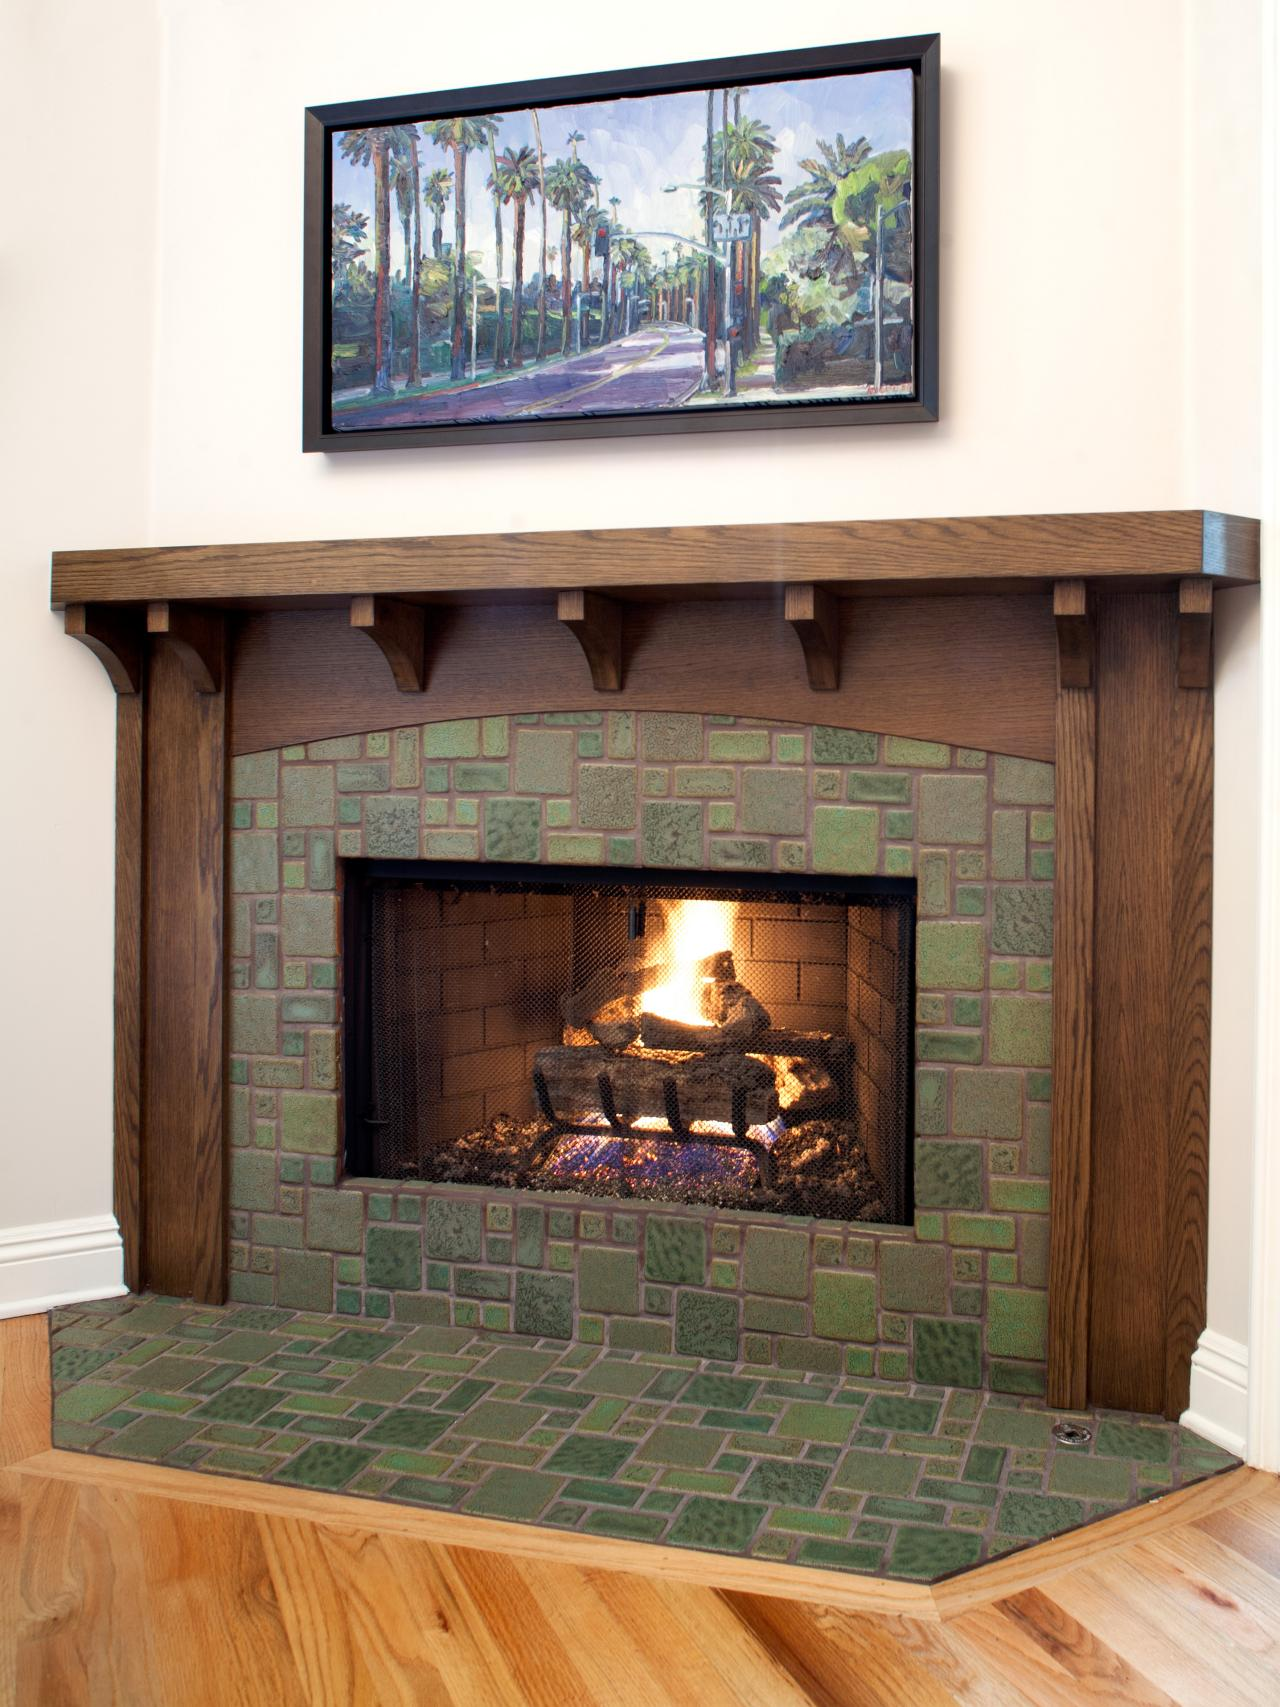 Bungalow Fireplace Mantel 1000 43 Images About Family Room Remodel On Pinterest